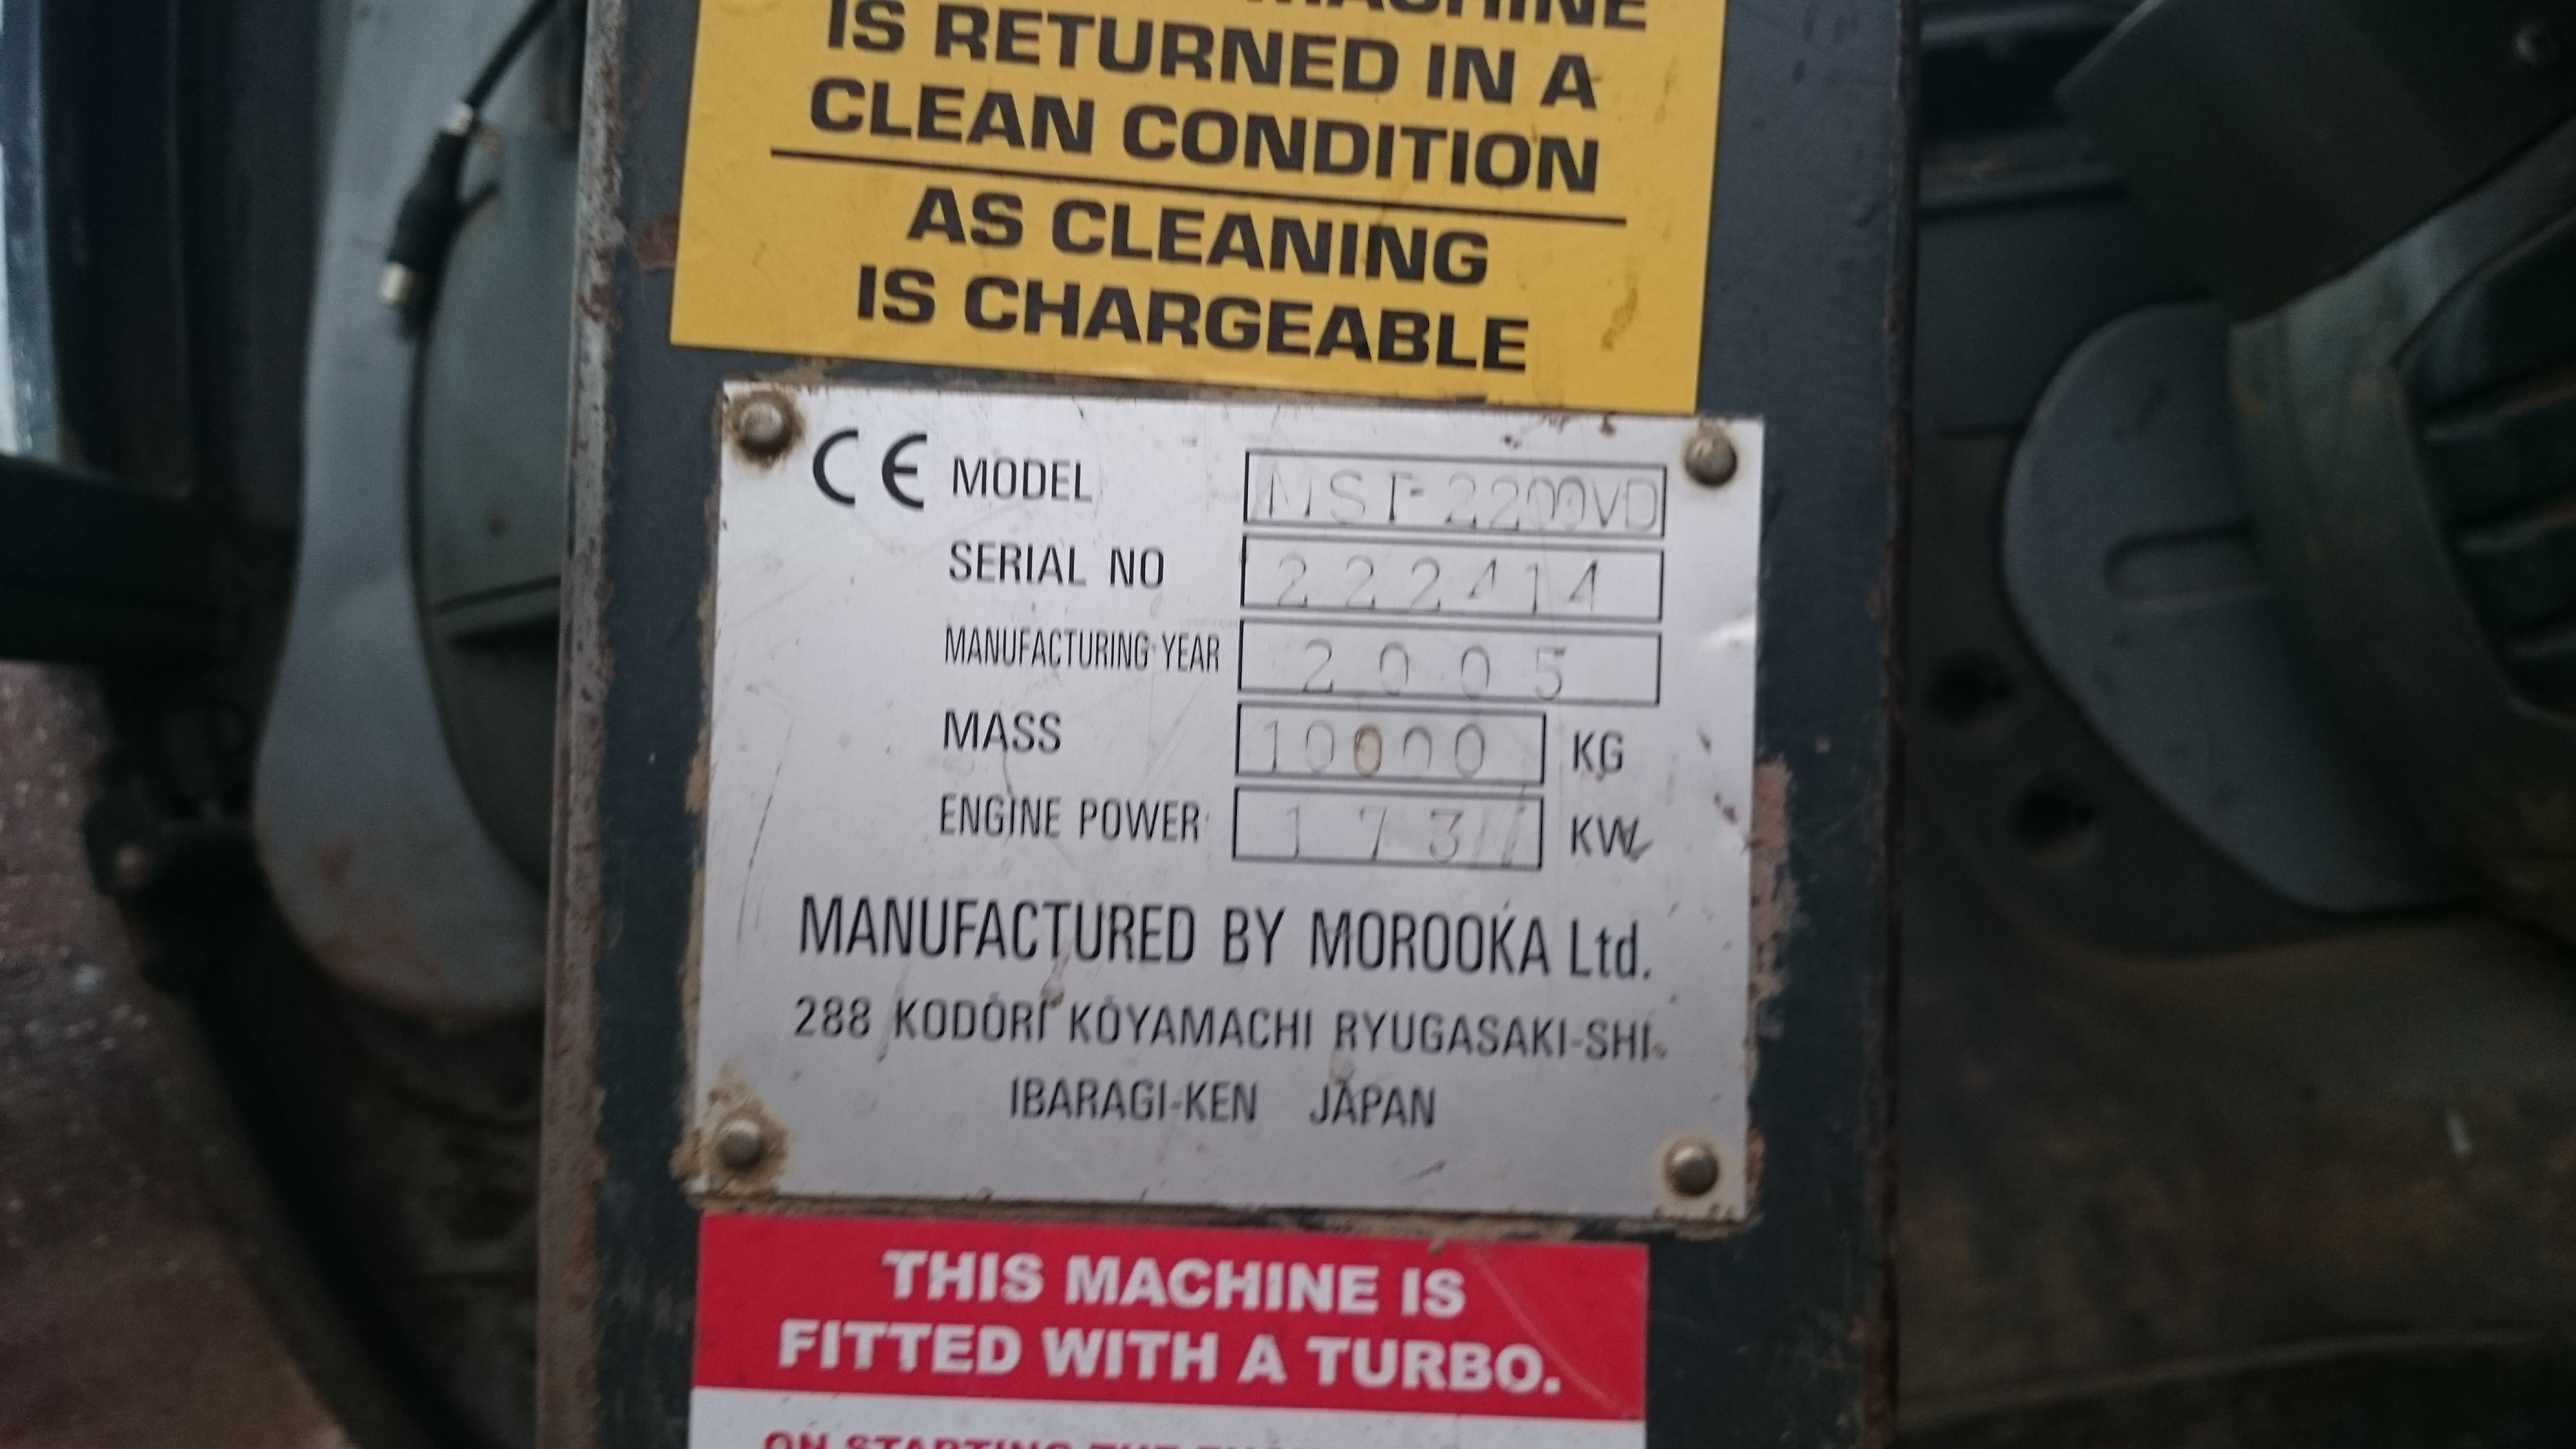 Morooka MST200 VD for hire or sale